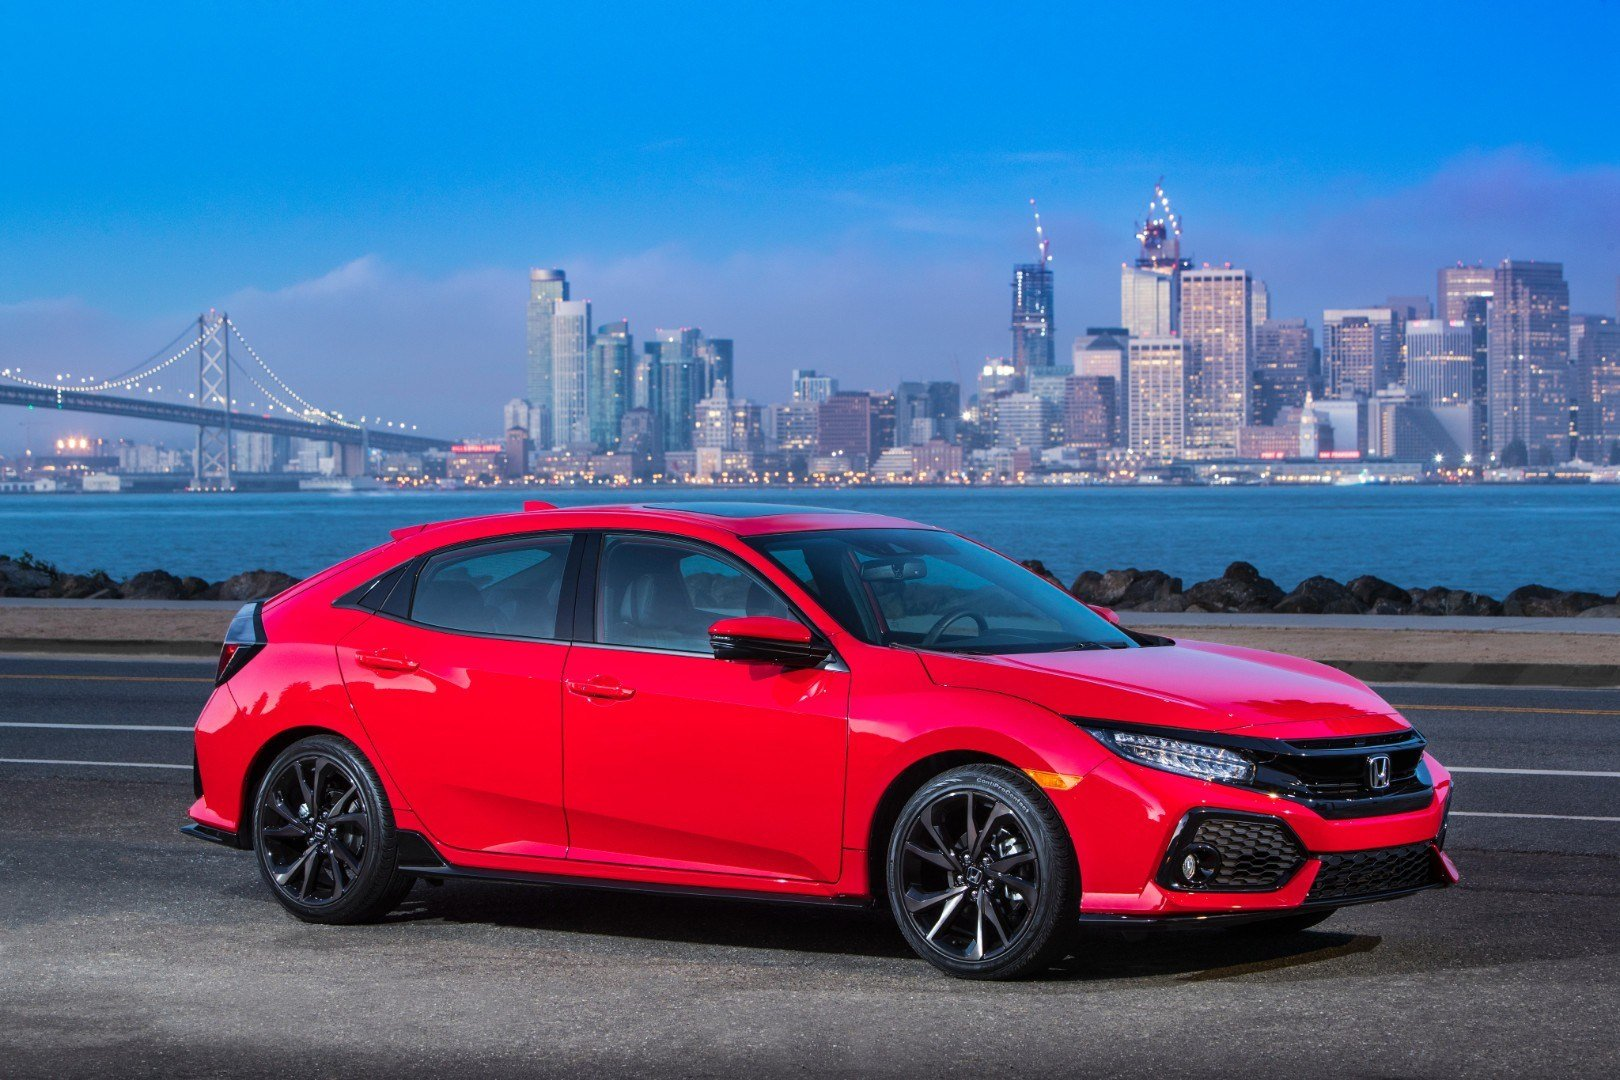 New Honda Civic 5 Doors 2016 Autoevolution On This Month